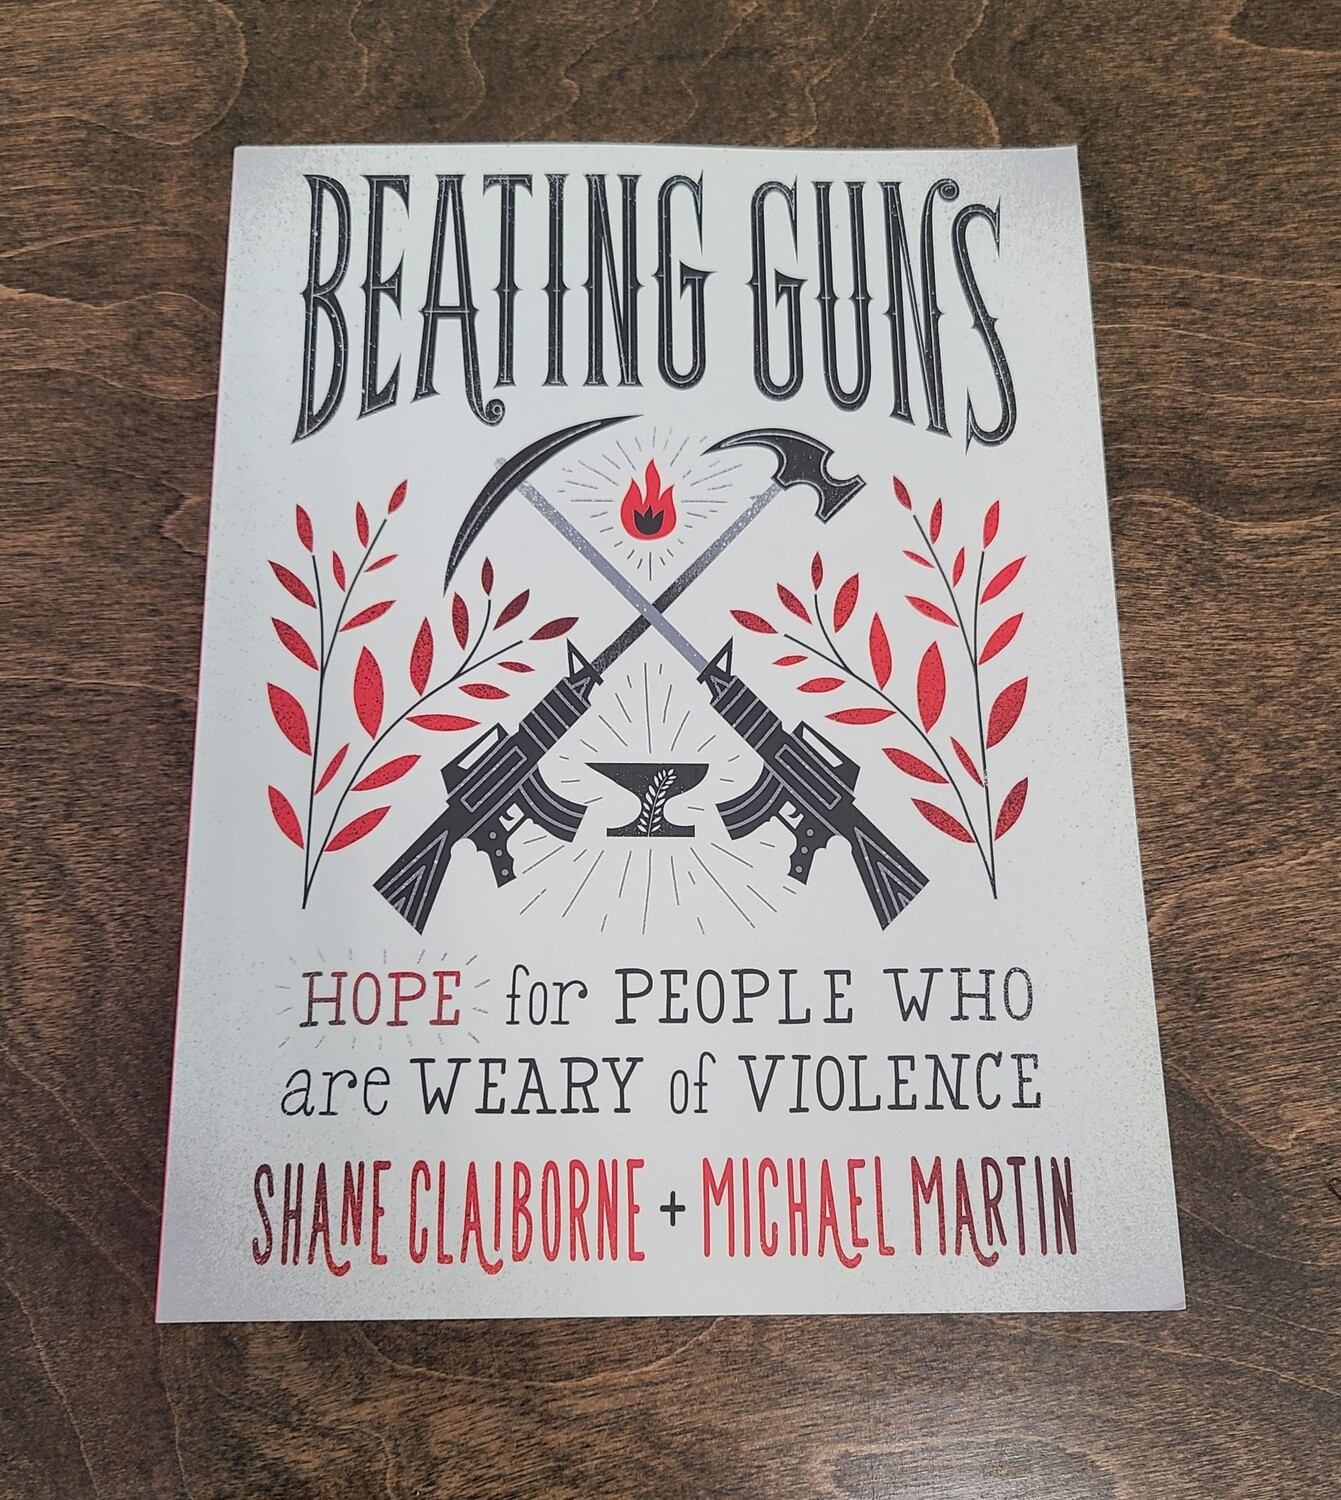 Beating Guns: Hope for People who are Weary of Violence by Shane Claiborne and Michael Martin